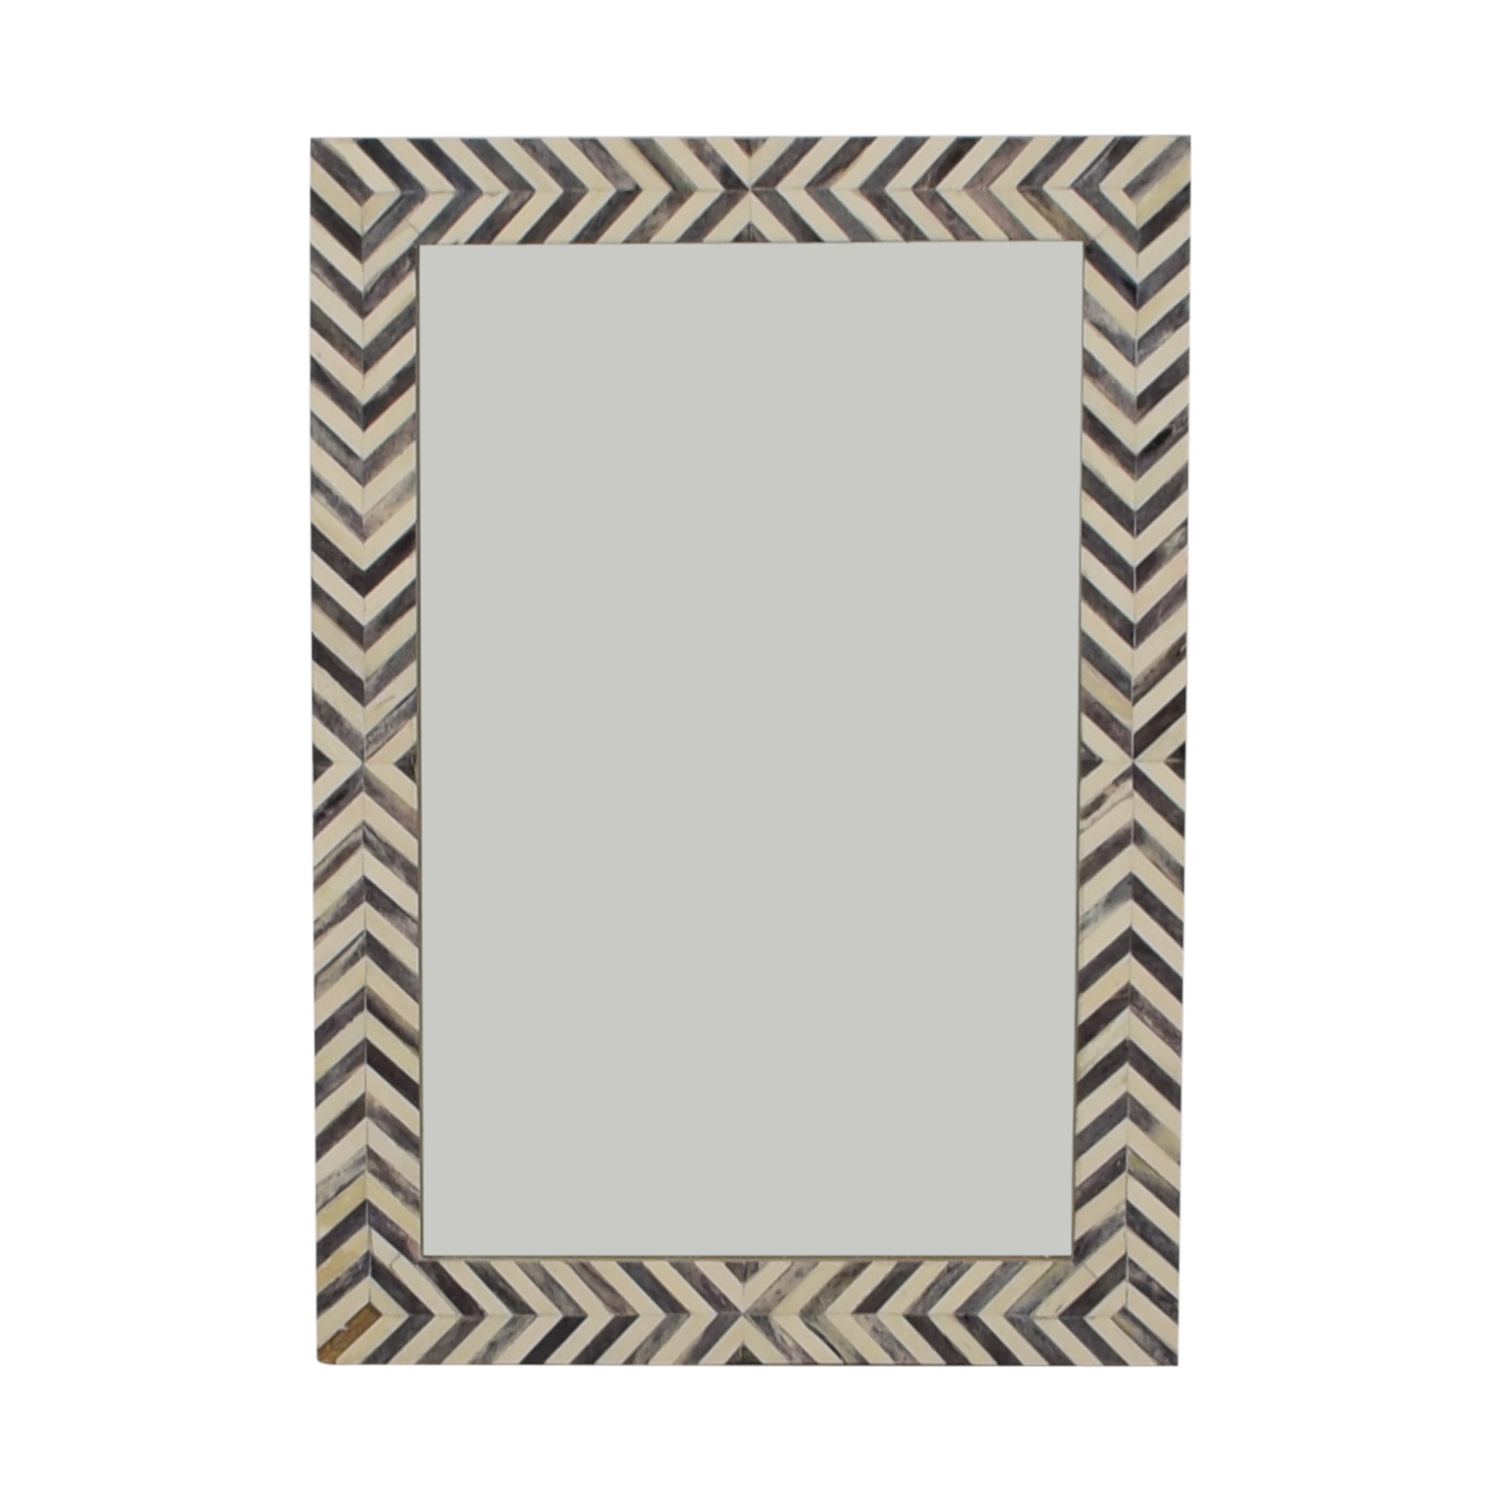 [%51% Off – West Elm West Elm Parsons Gray Herringbone Wall Mirror / Decor With Regard To Fashionable Parsons Wall Mirrors|Parsons Wall Mirrors Pertaining To Well Known 51% Off – West Elm West Elm Parsons Gray Herringbone Wall Mirror / Decor|Recent Parsons Wall Mirrors For 51% Off – West Elm West Elm Parsons Gray Herringbone Wall Mirror / Decor|Widely Used 51% Off – West Elm West Elm Parsons Gray Herringbone Wall Mirror / Decor With Parsons Wall Mirrors%] (View 3 of 20)